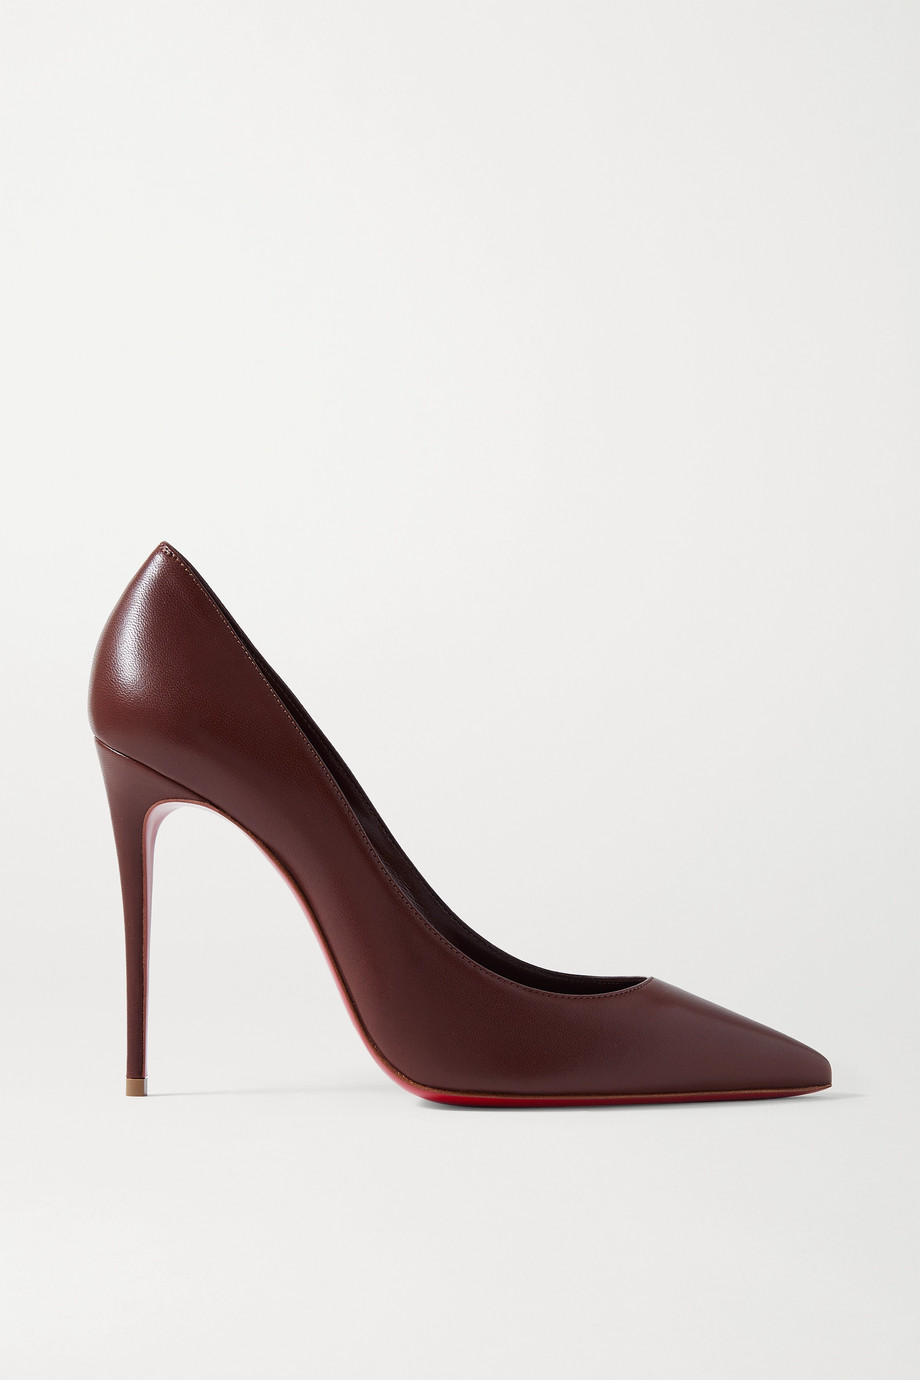 Christian Louboutin Kate 100 leather pumps